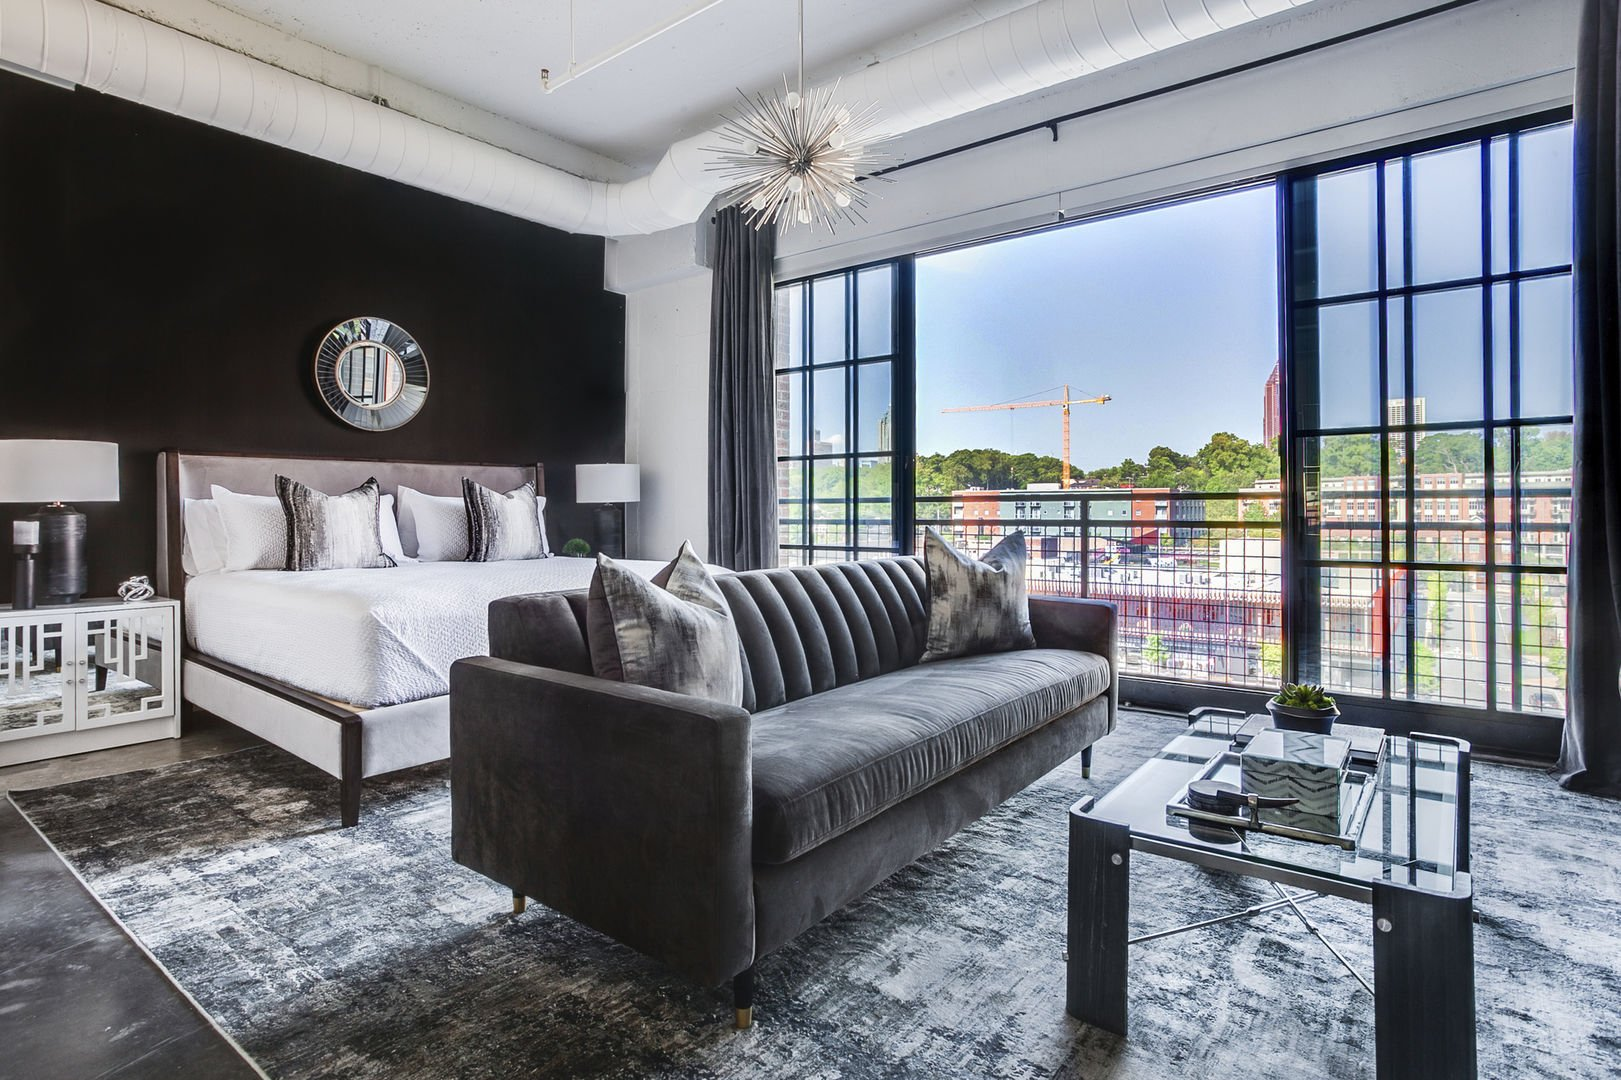 Living and Sleeping are comfortable on the bed and sofa in this Ponce City Market rental.